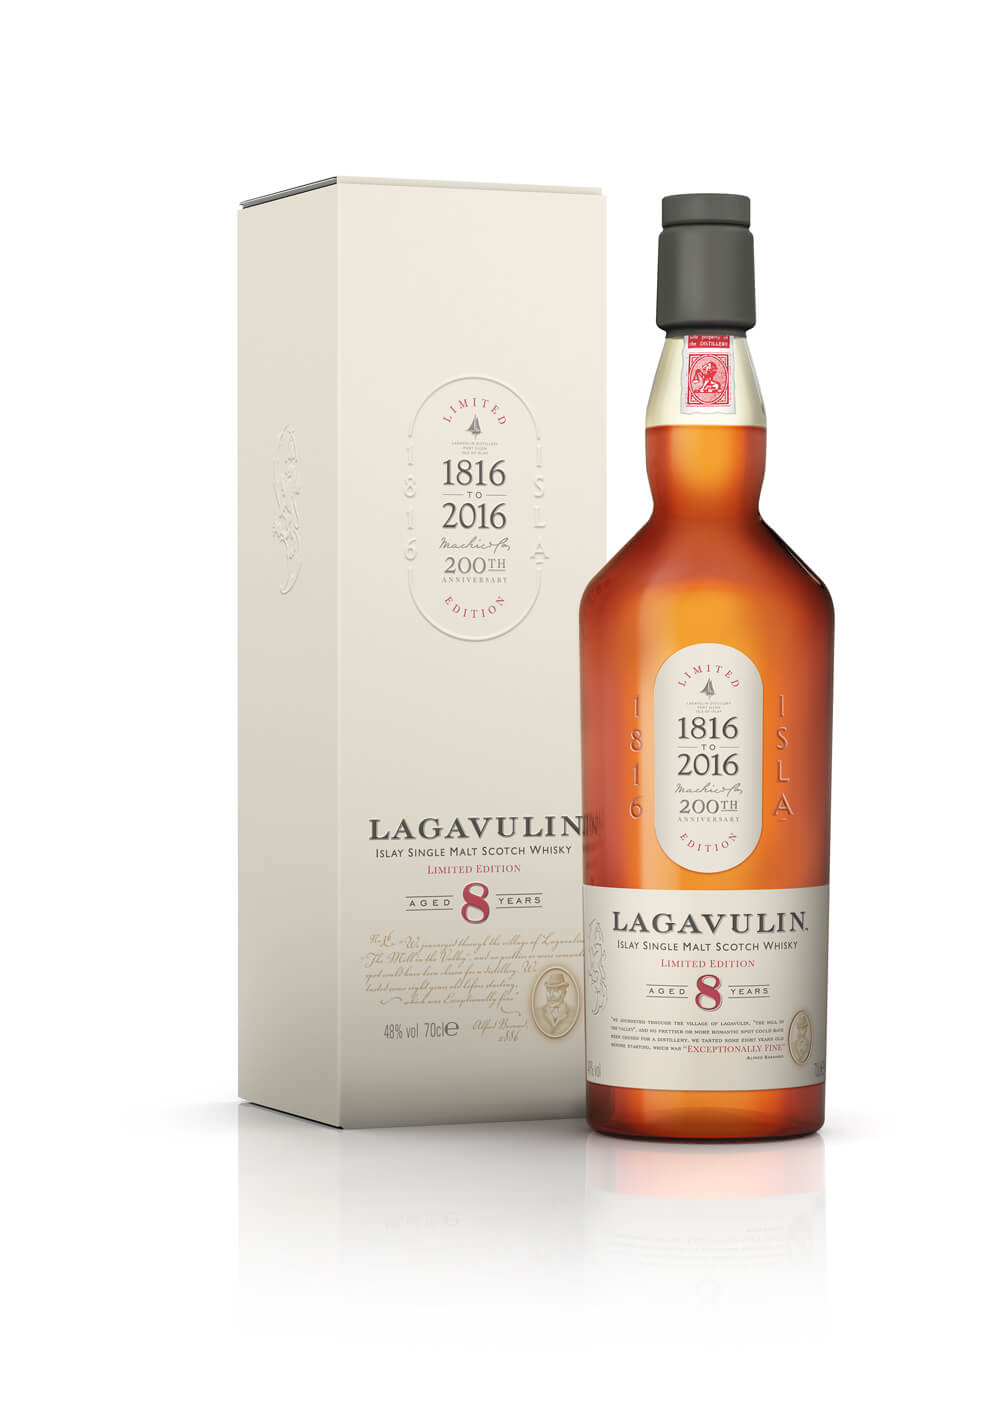 LAGAVULIN_PACKSHOT - ESCAPEMENT MAGAZINE - The Finer Things in Life - whisky editorial by Philip Day